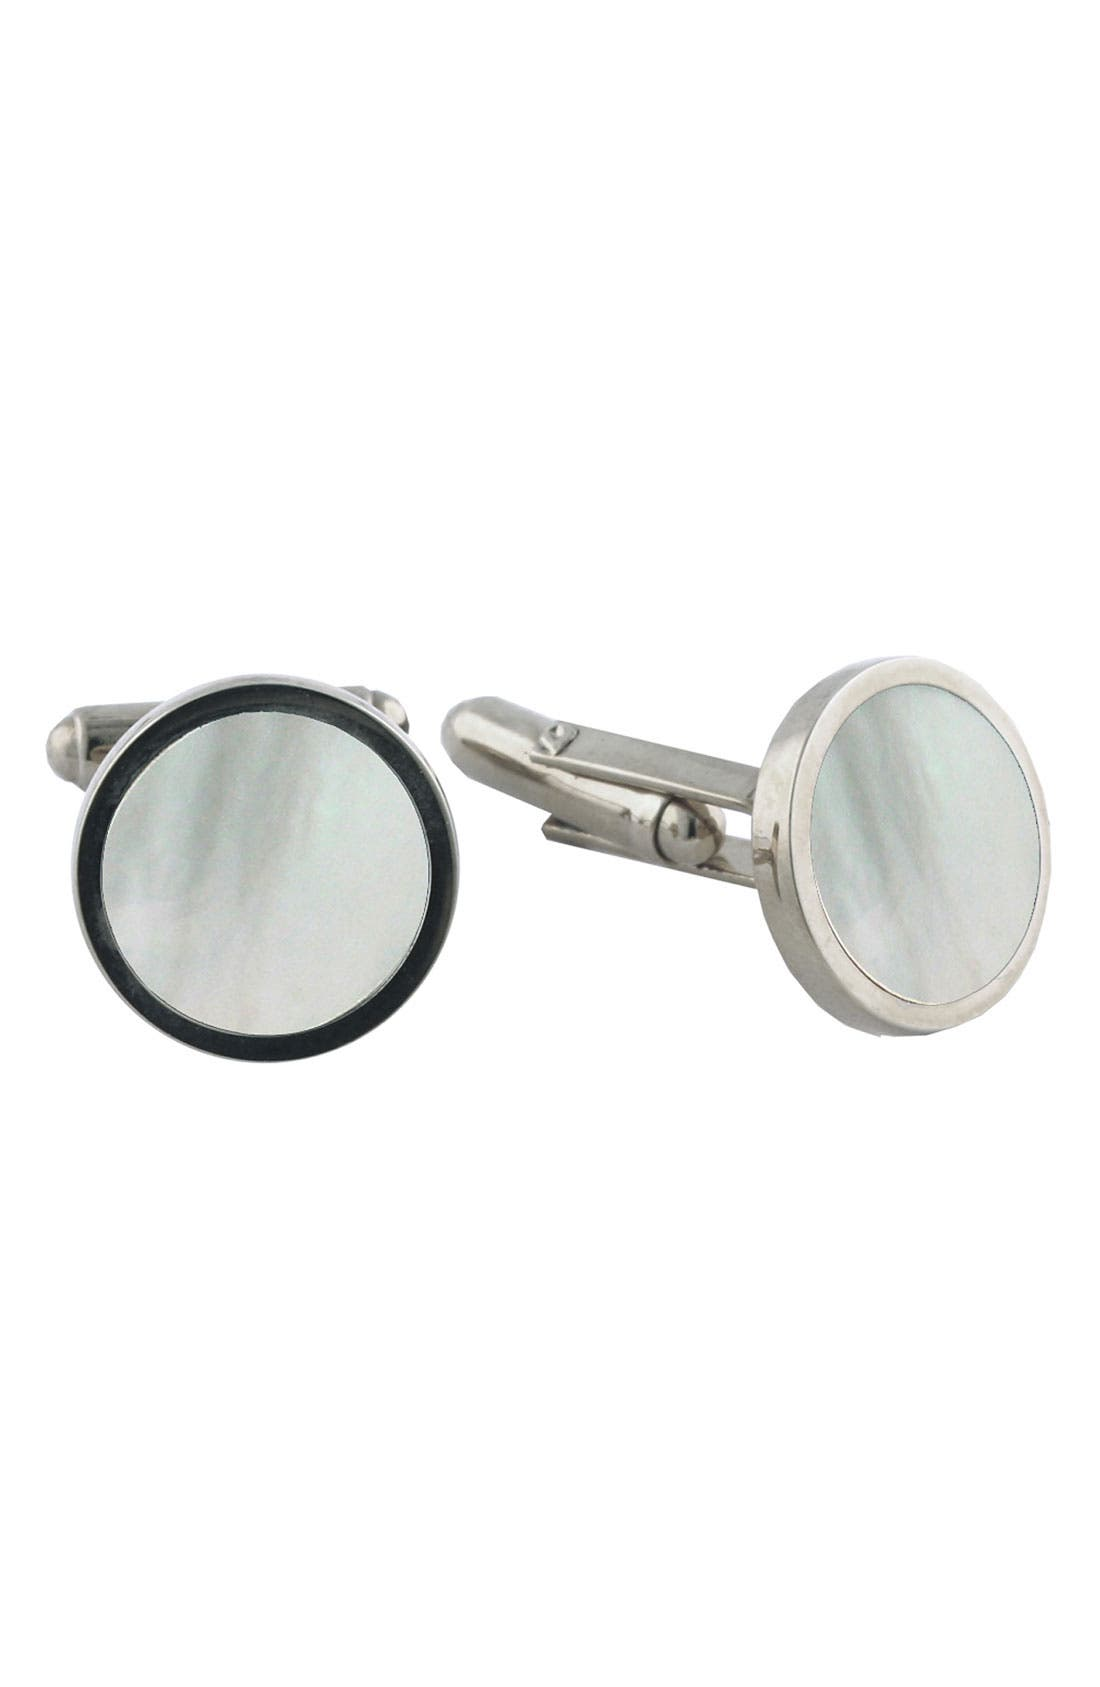 Main Image - David Donahue Sterling Silver & Mother-of-Pearl Cuff Links